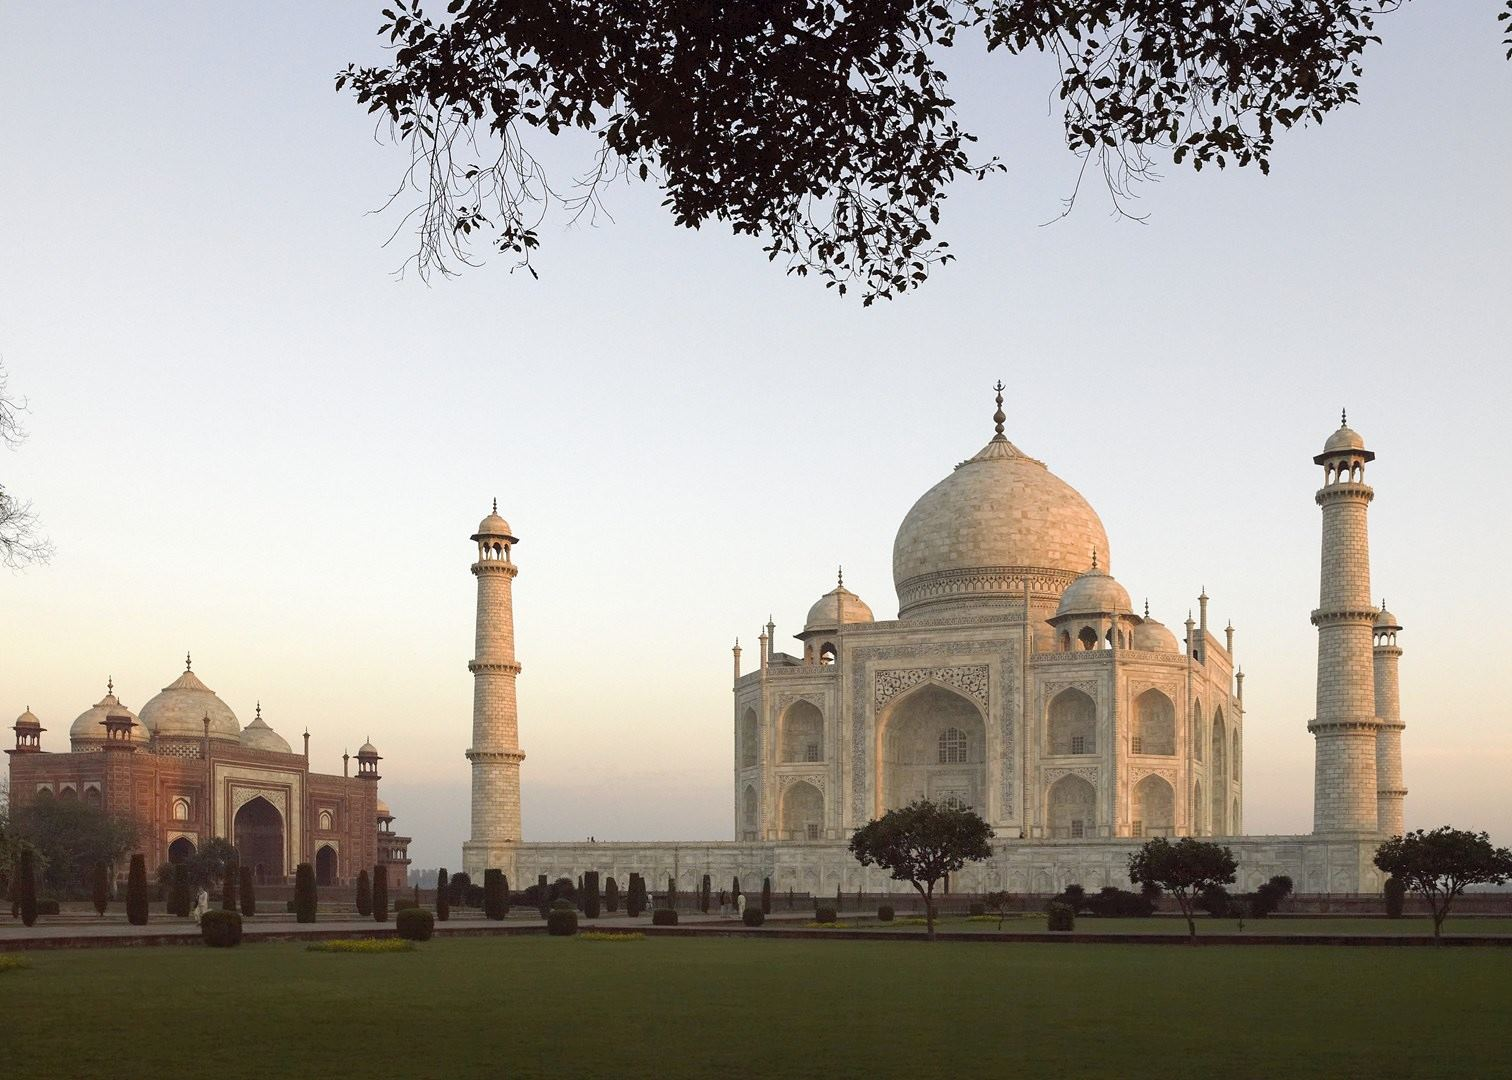 trip to taj mahal Agra & taj mahal tours from new delhi – new delhi recommendations from viatorcom.